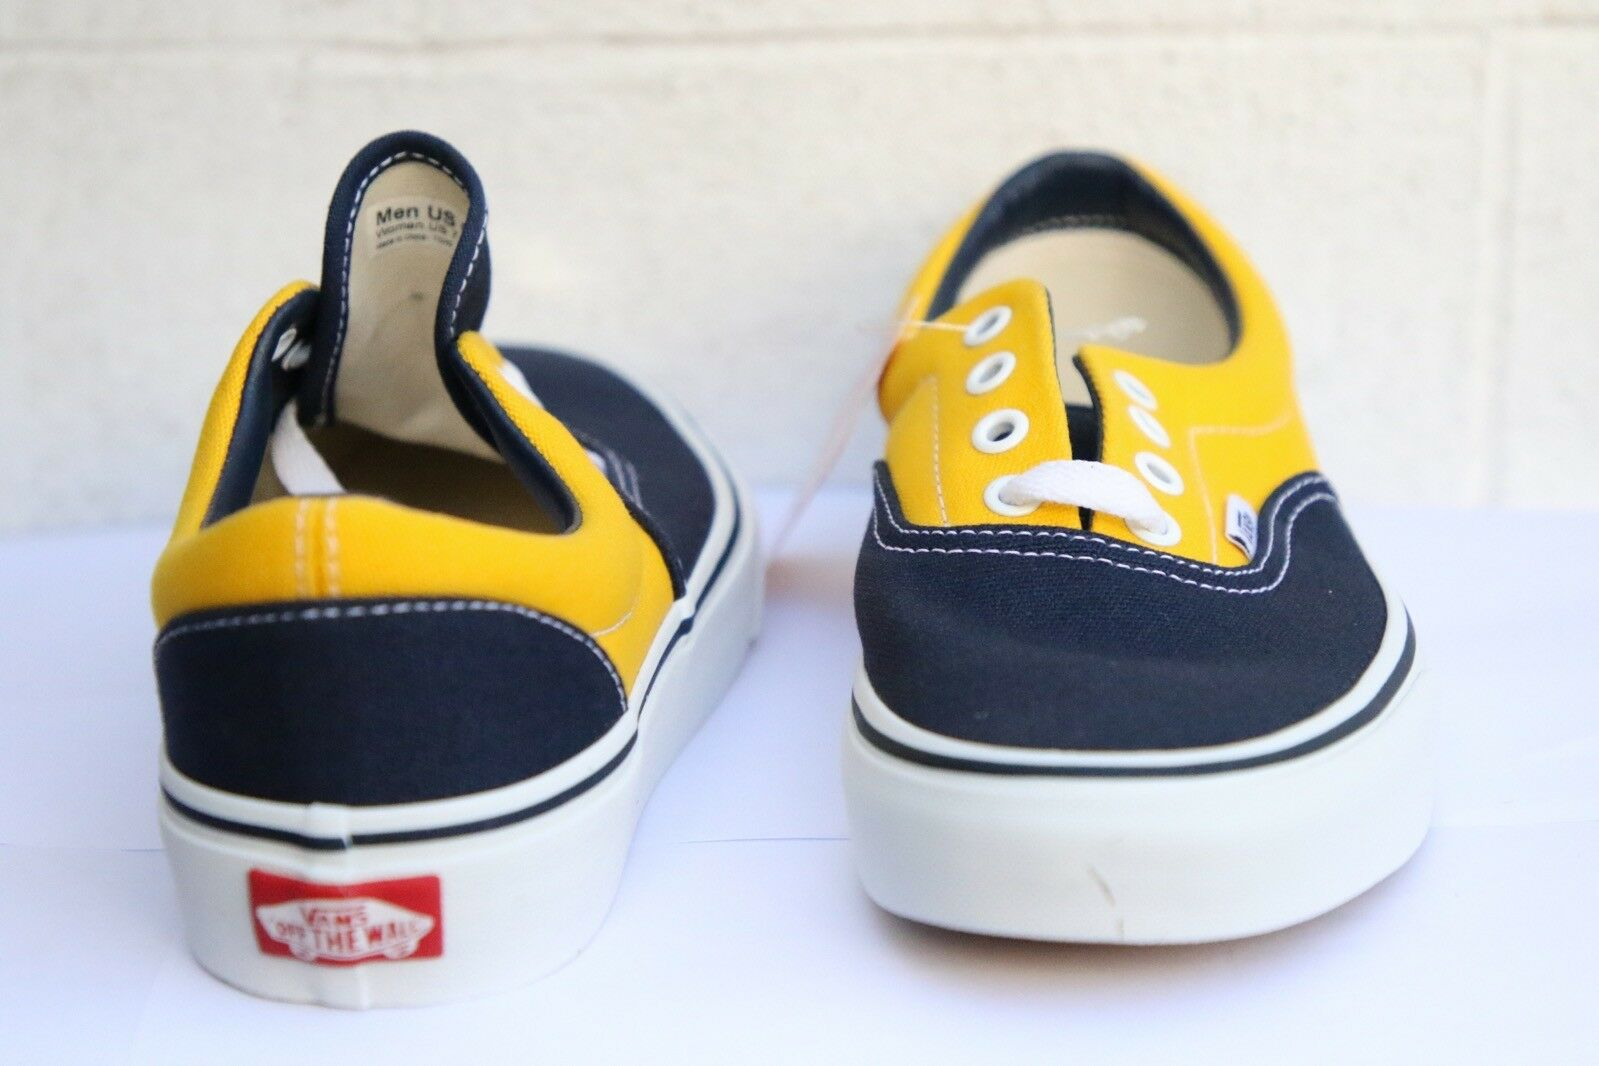 Vans Era Golden Blau Coast Dark Blau Golden Yellow Classic Dpwtr/Trd Trainers UK 5 EU 38 77d944